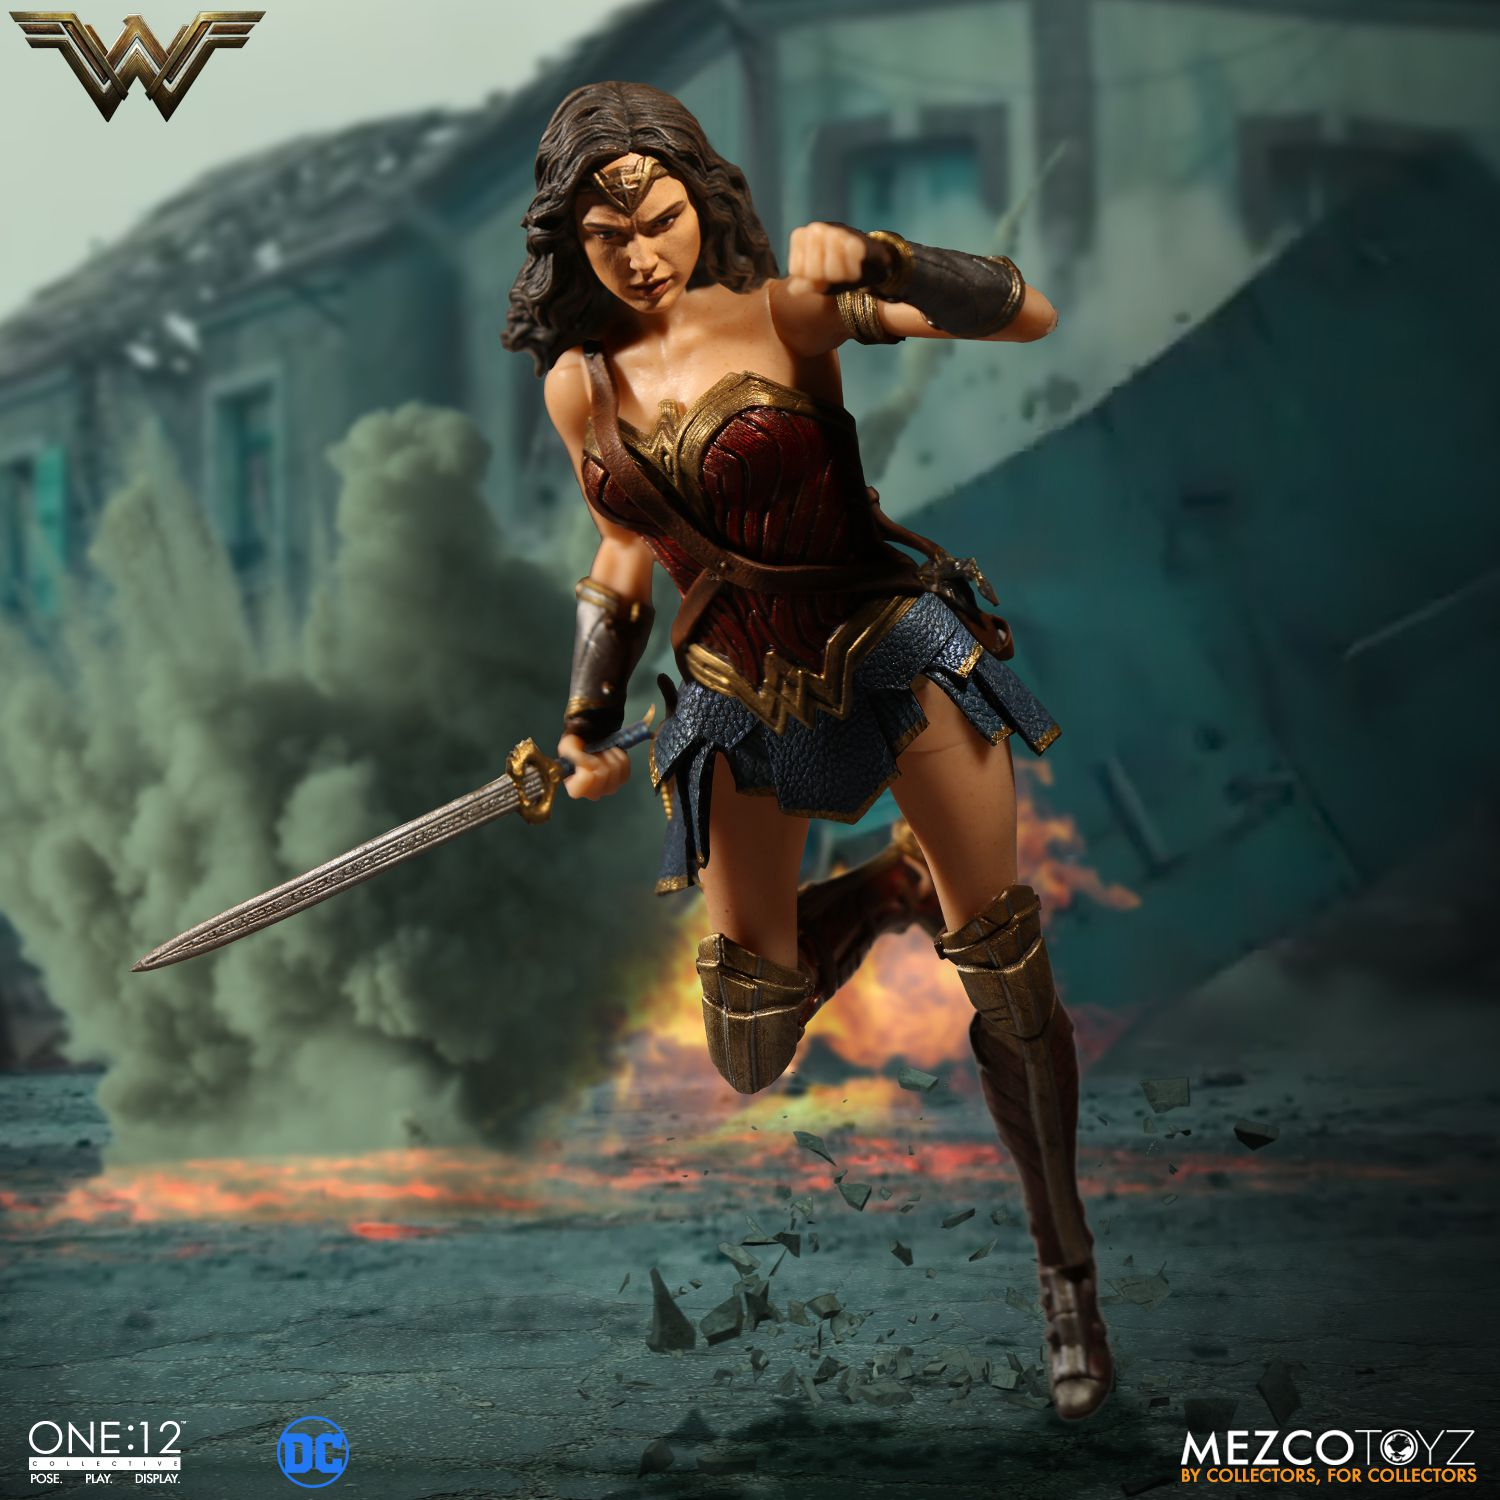 Wonder-Woman-One12-Mezco-006